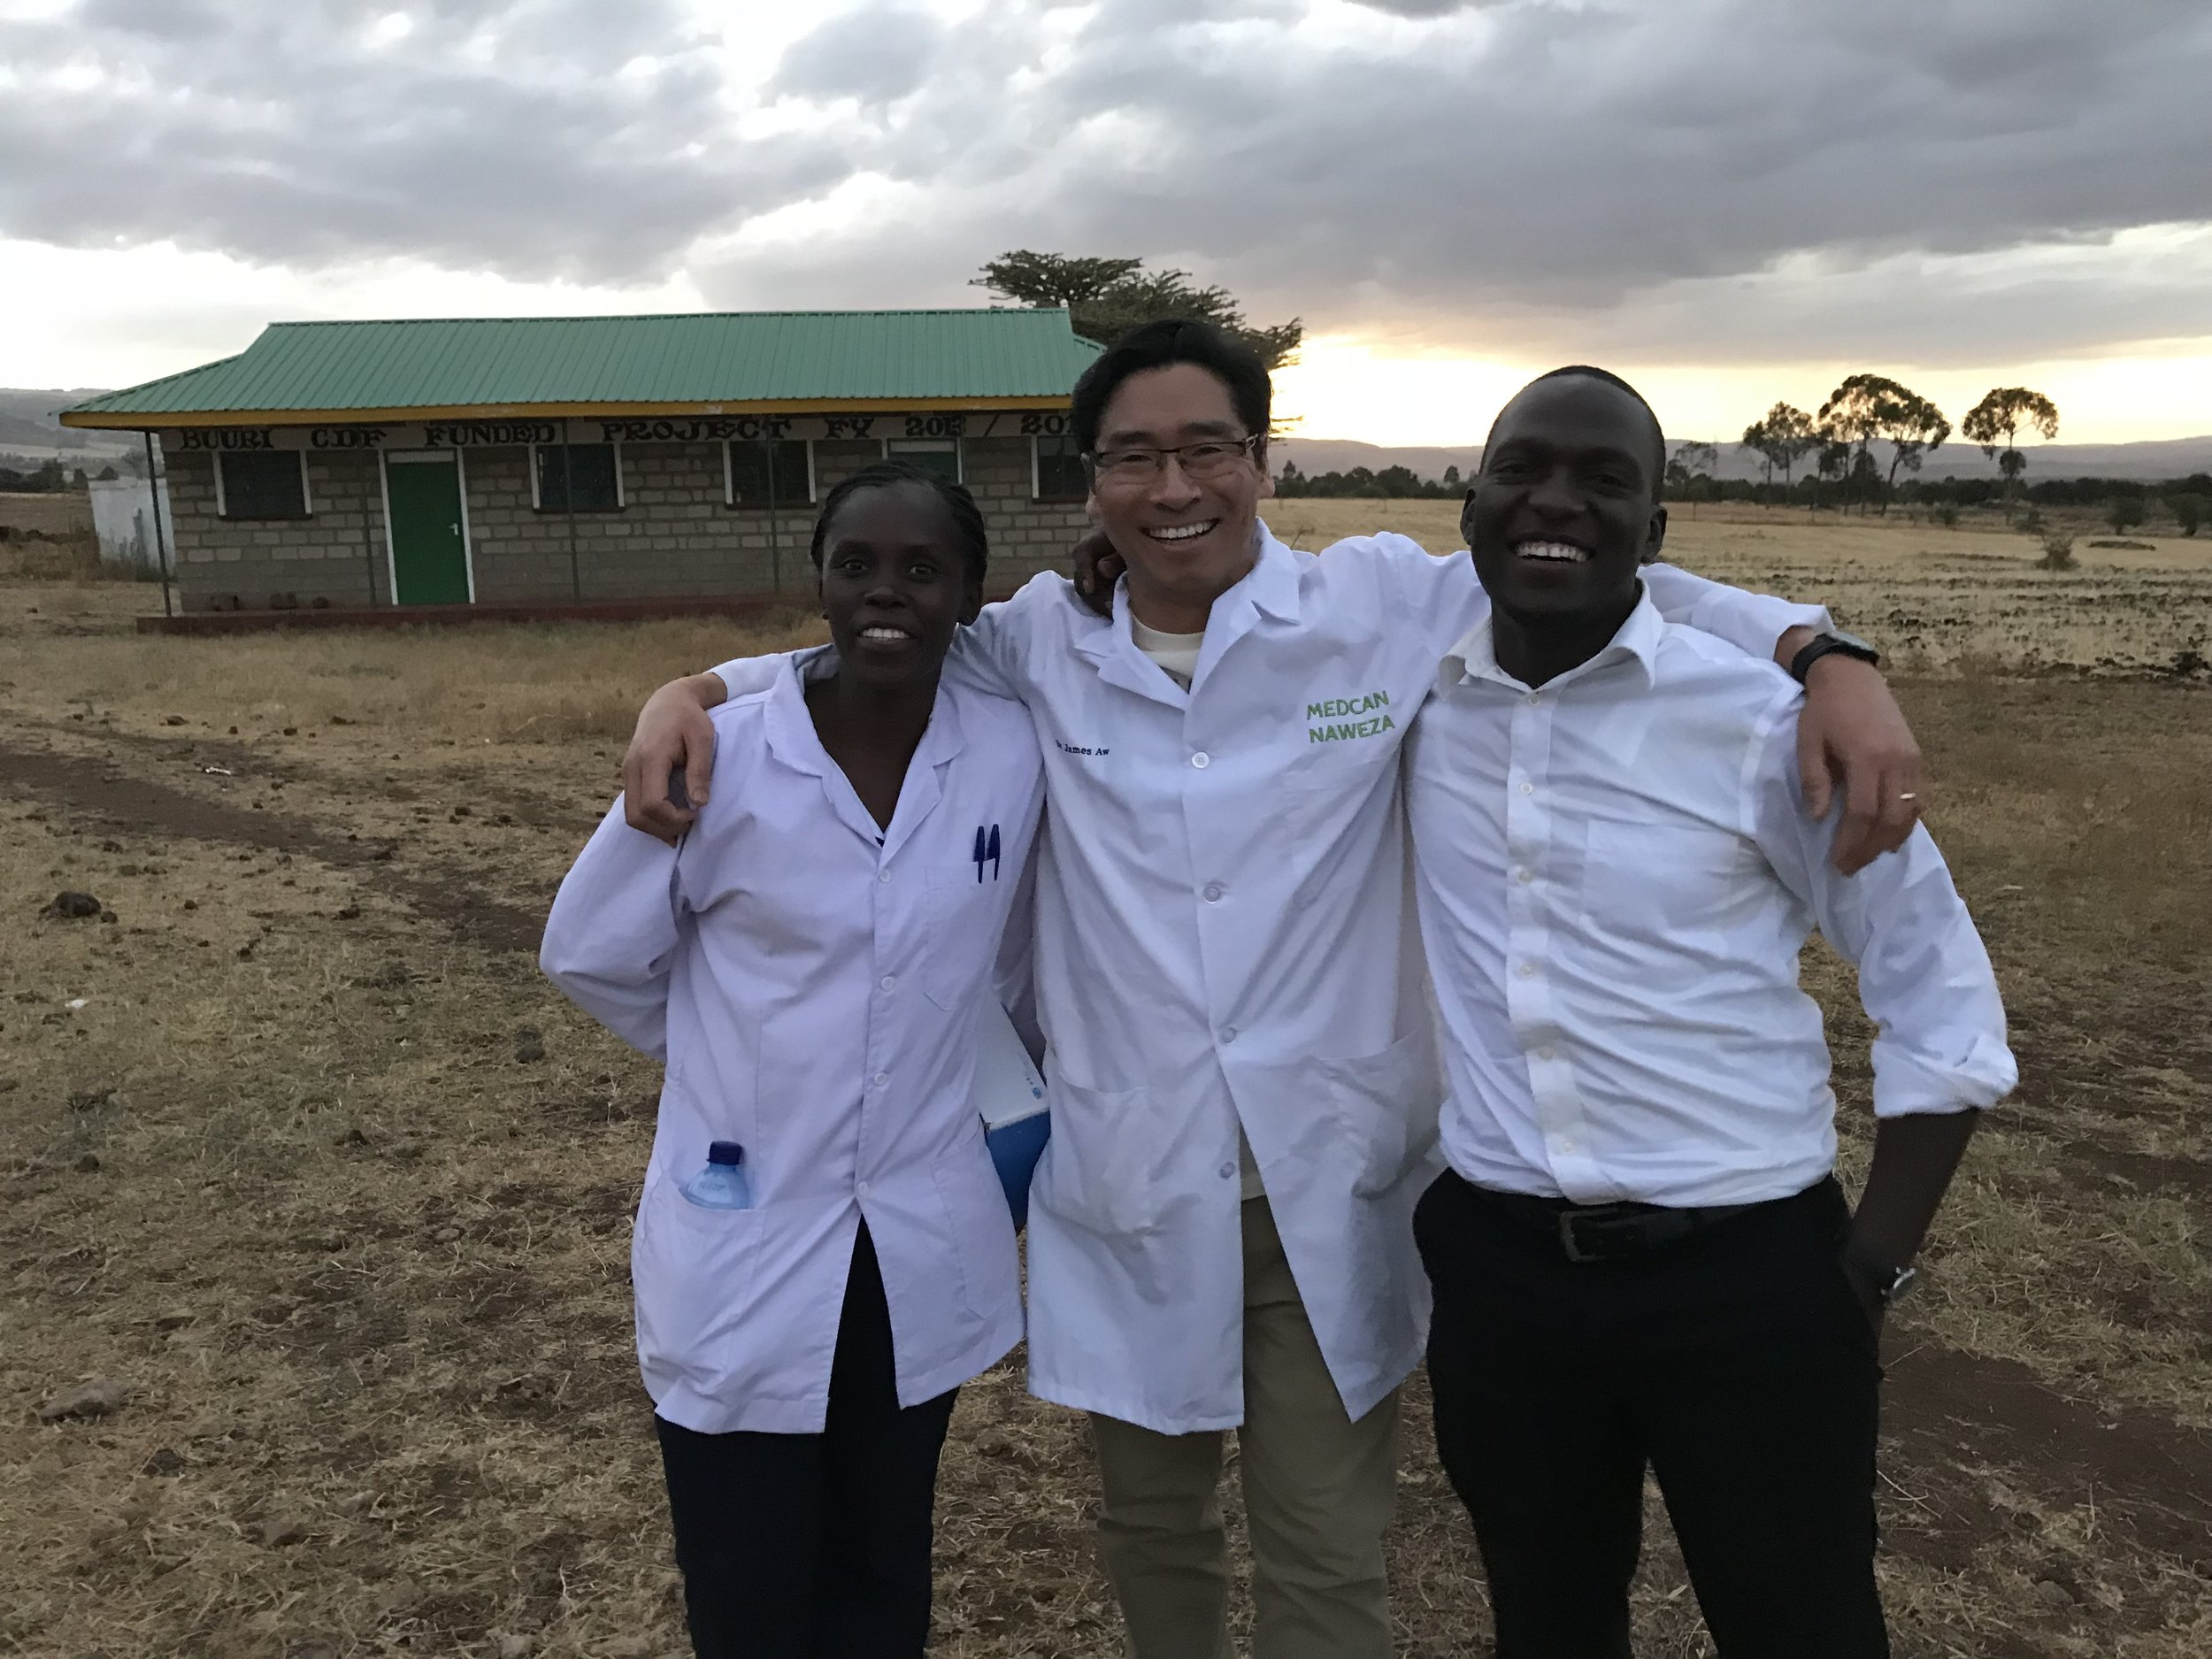 Here I am with Nurse Lydia and Nurse Hagai at the end of the outreach. The day started with lots of people eager to be seen at our outreach in the Meru district.